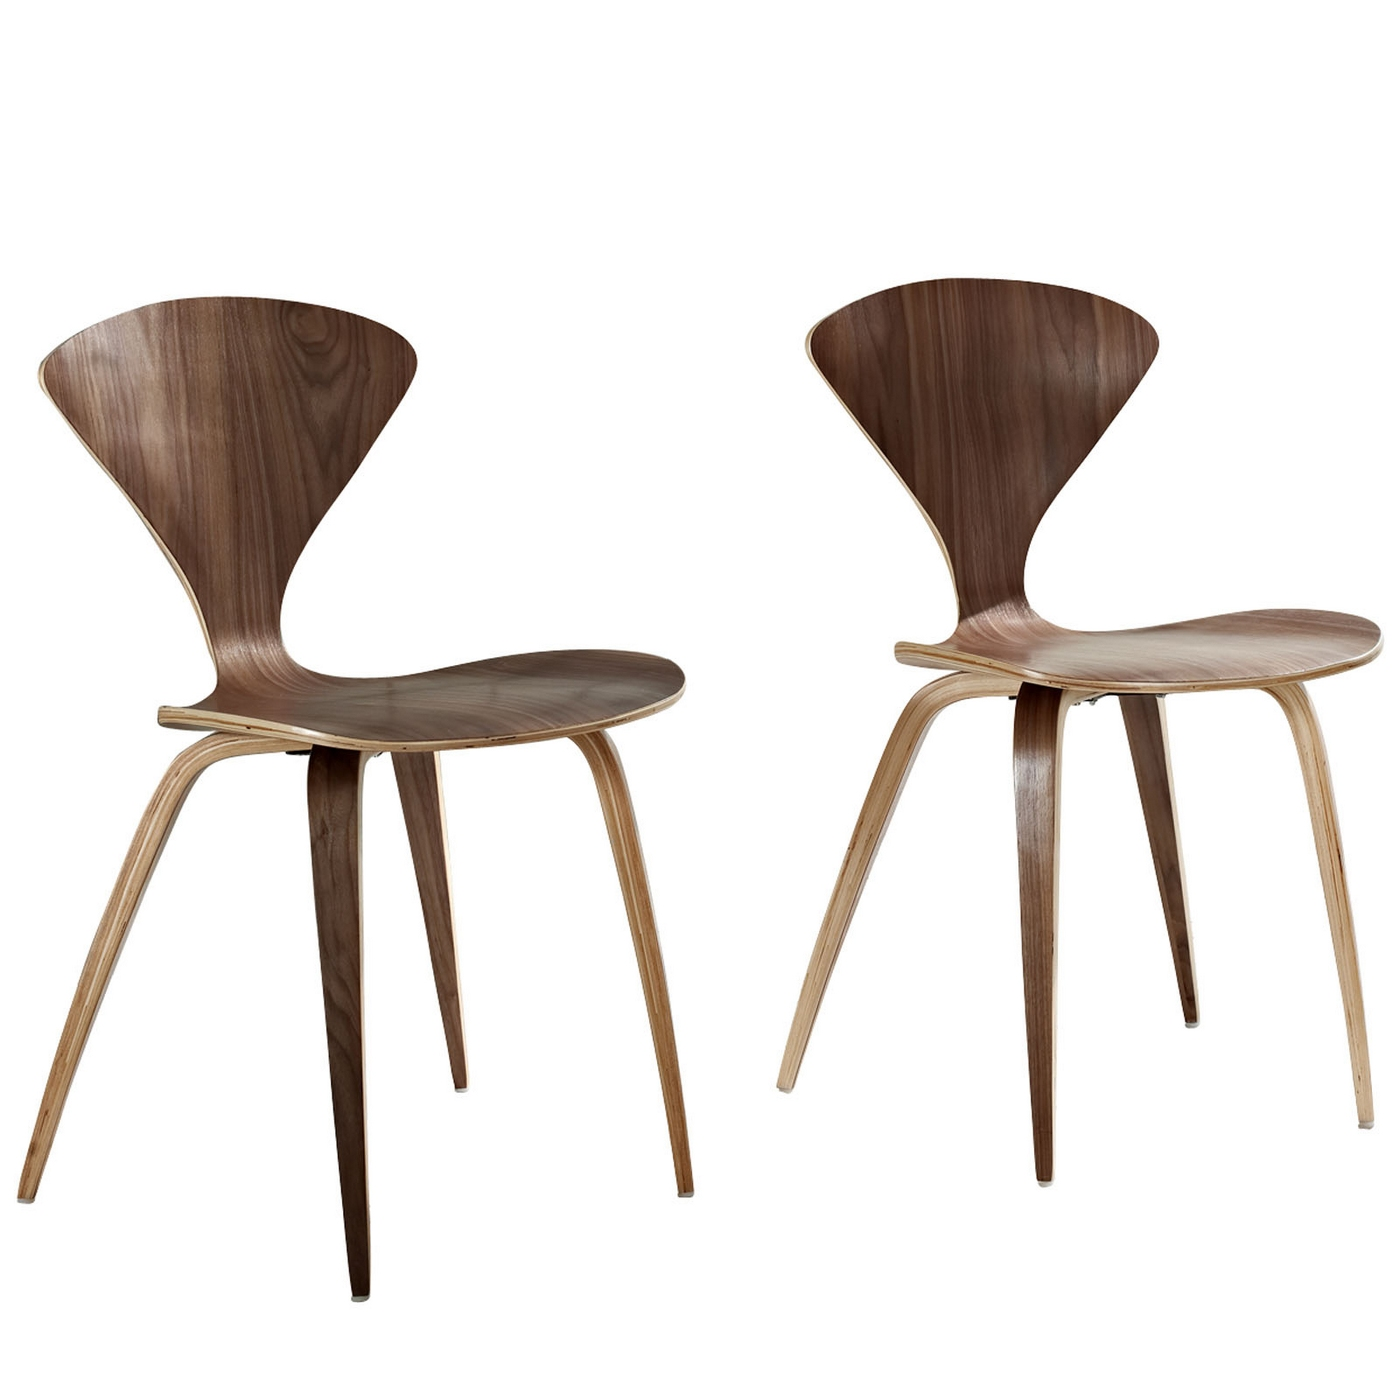 modern wood panel dining chairs with lacquered finish dark walnut